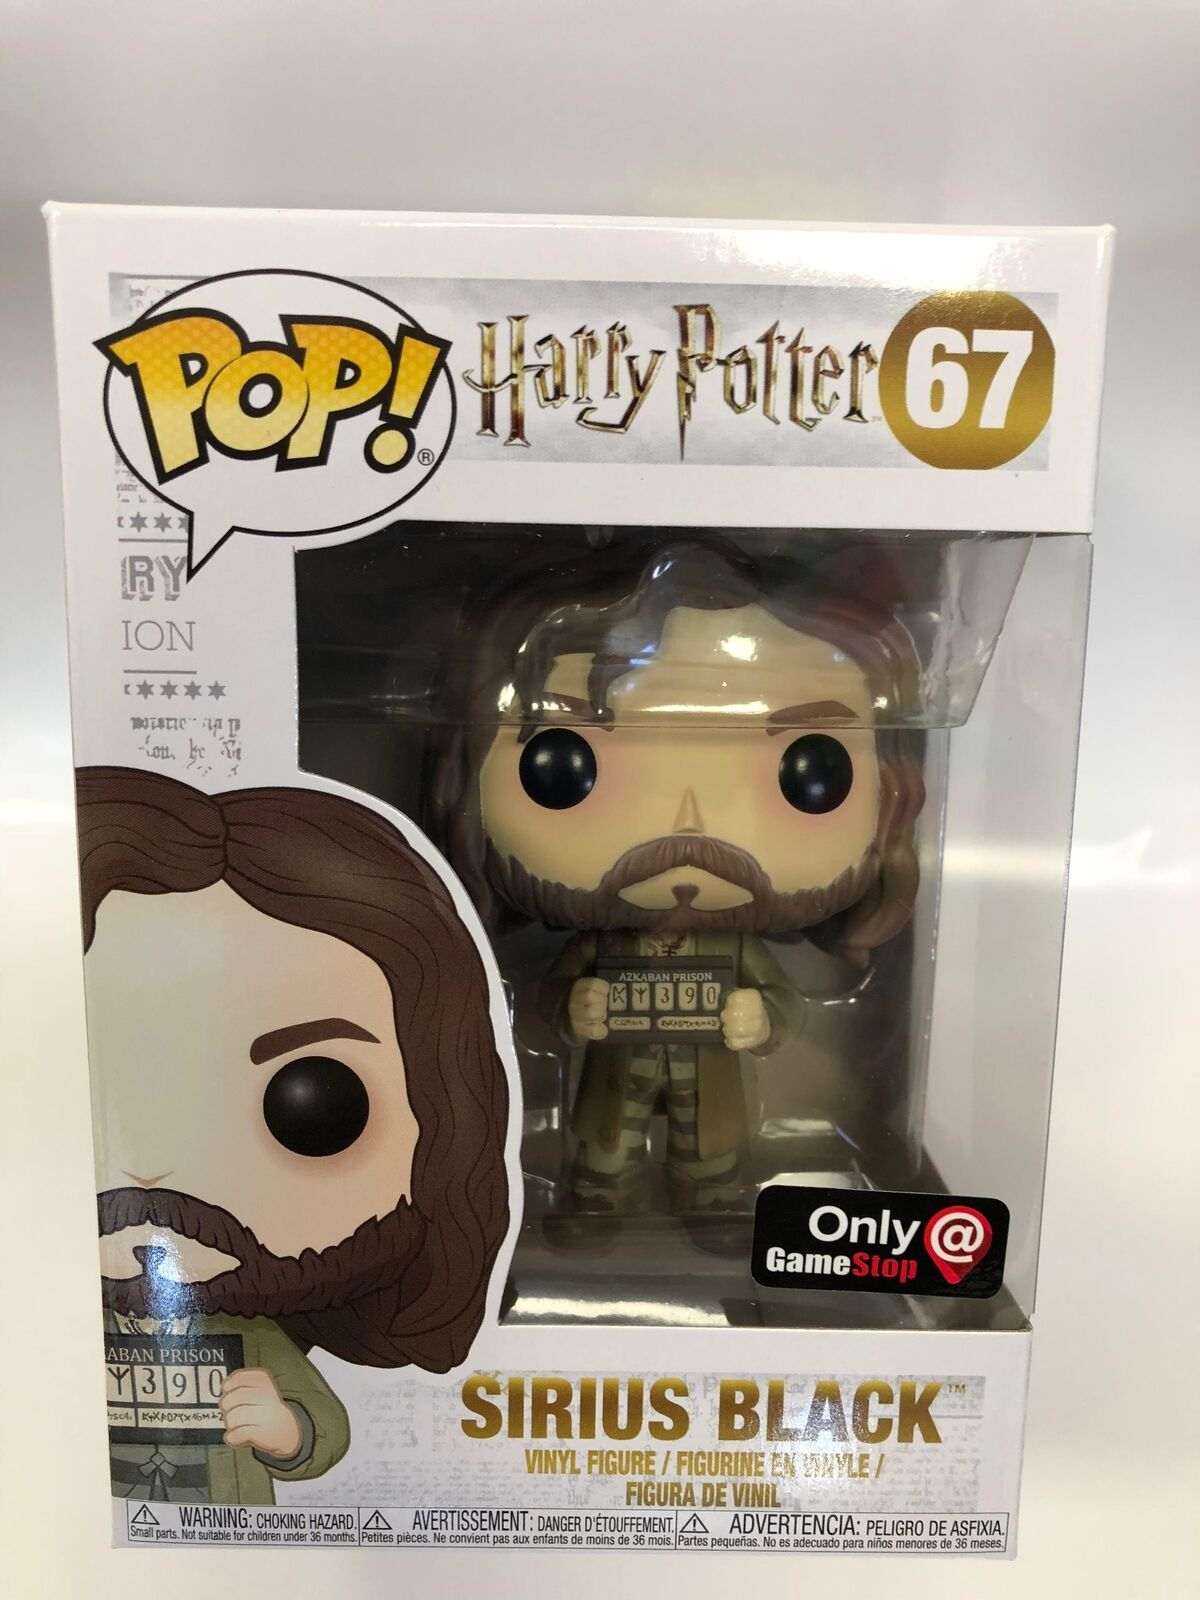 21a007fed19 Harry Potter Sirius Black Gamestop Funko Pop  67 for sale online